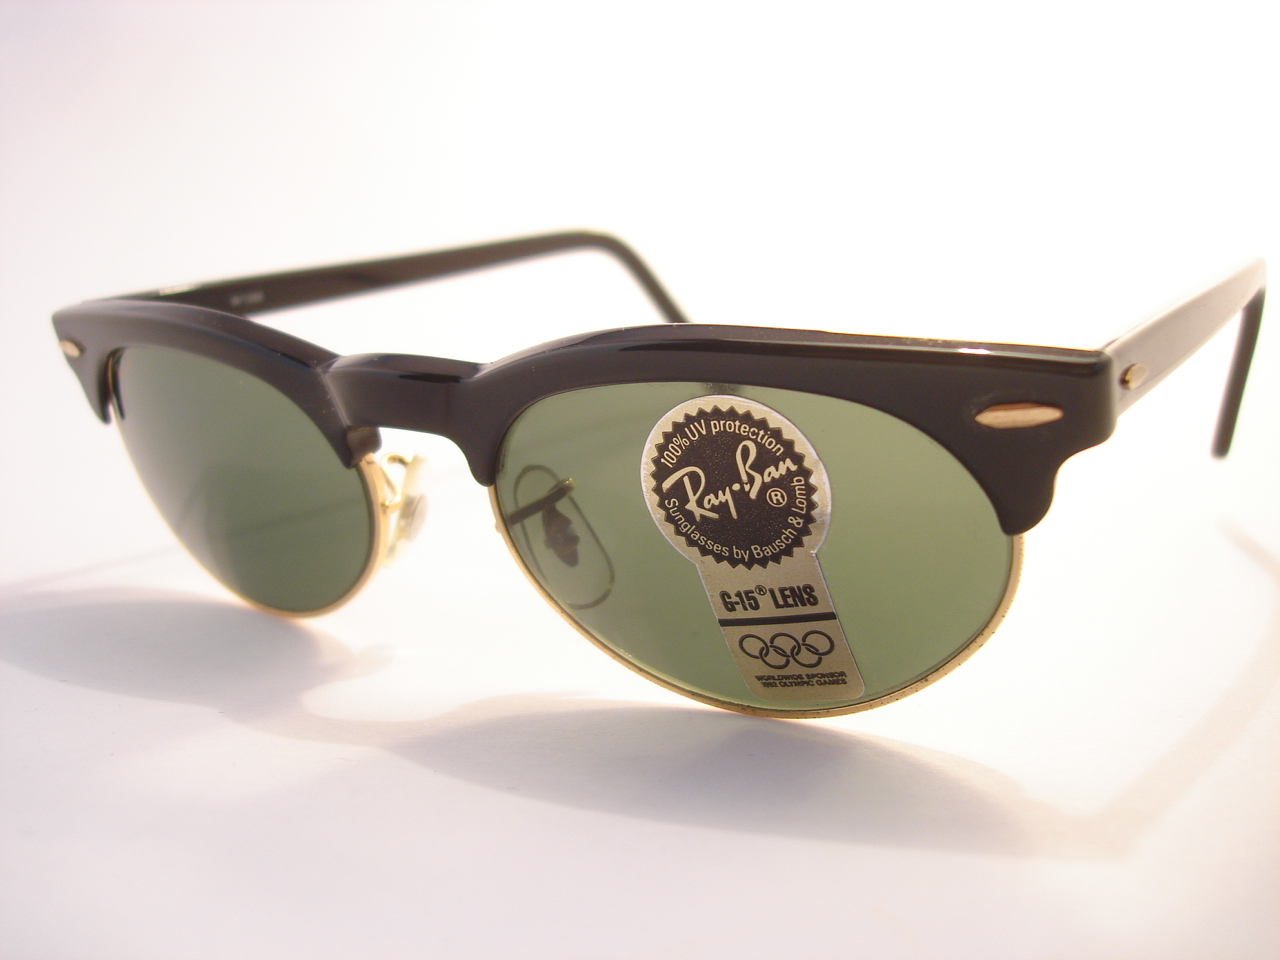 ray ban sunglasses made in usa  theothersideofthepillow: vintage RAY BAN by BAUSCH AND LOMB B\u0026L ...